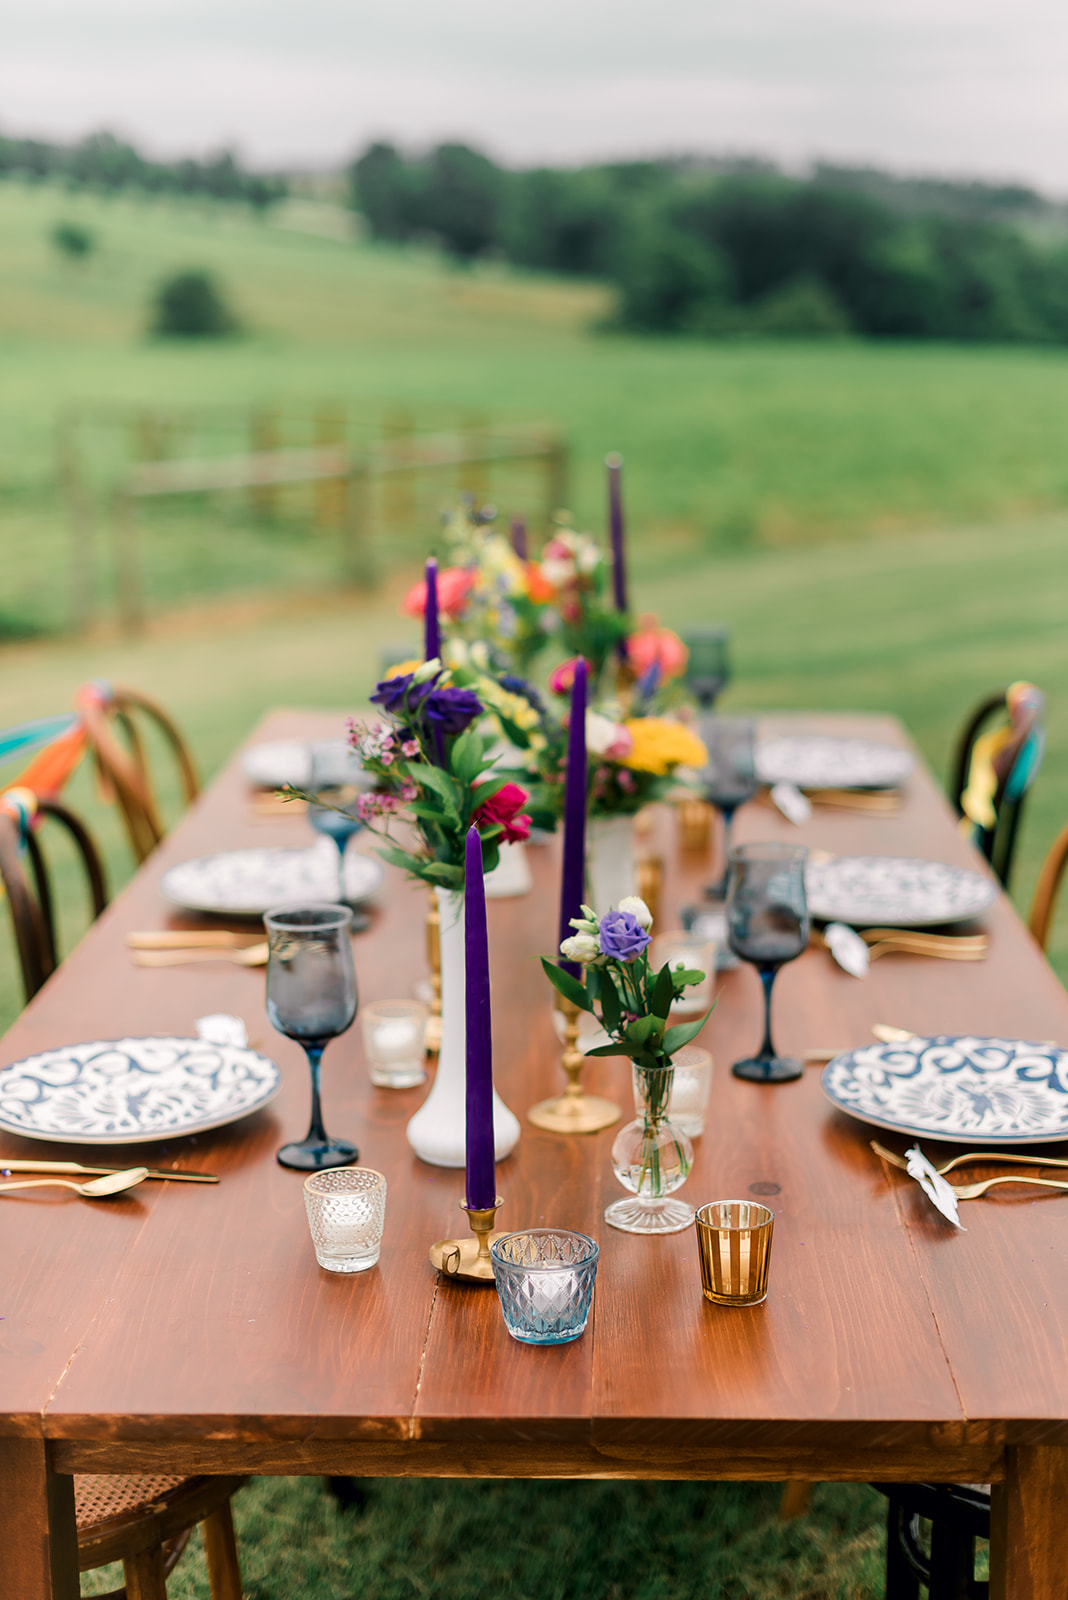 Fun & Colorful Barn Wedding Tablescape at Heaven Sent Farms in Avella Dawn Derbyshire Photography (23).jpg